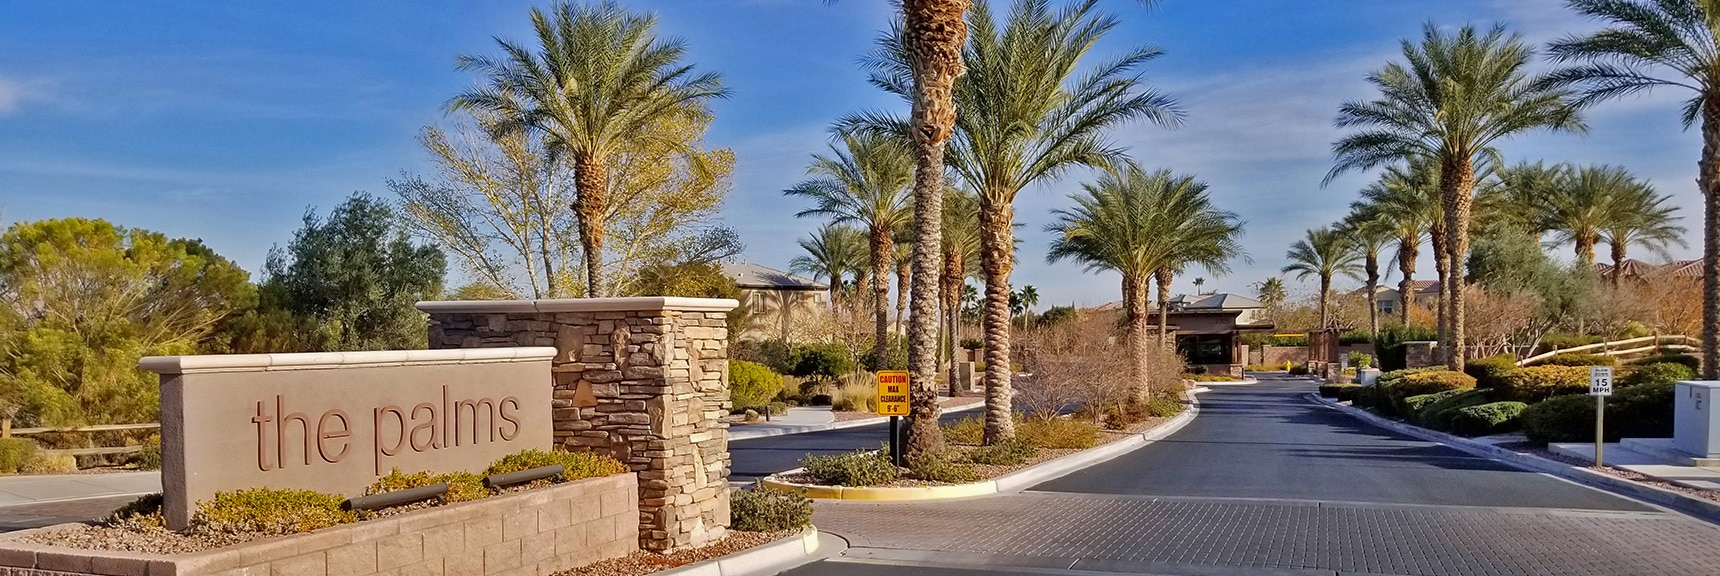 Entrance of The Palms | Snapshot of Las Vegas Northern Growth Edge on January 3, 2021